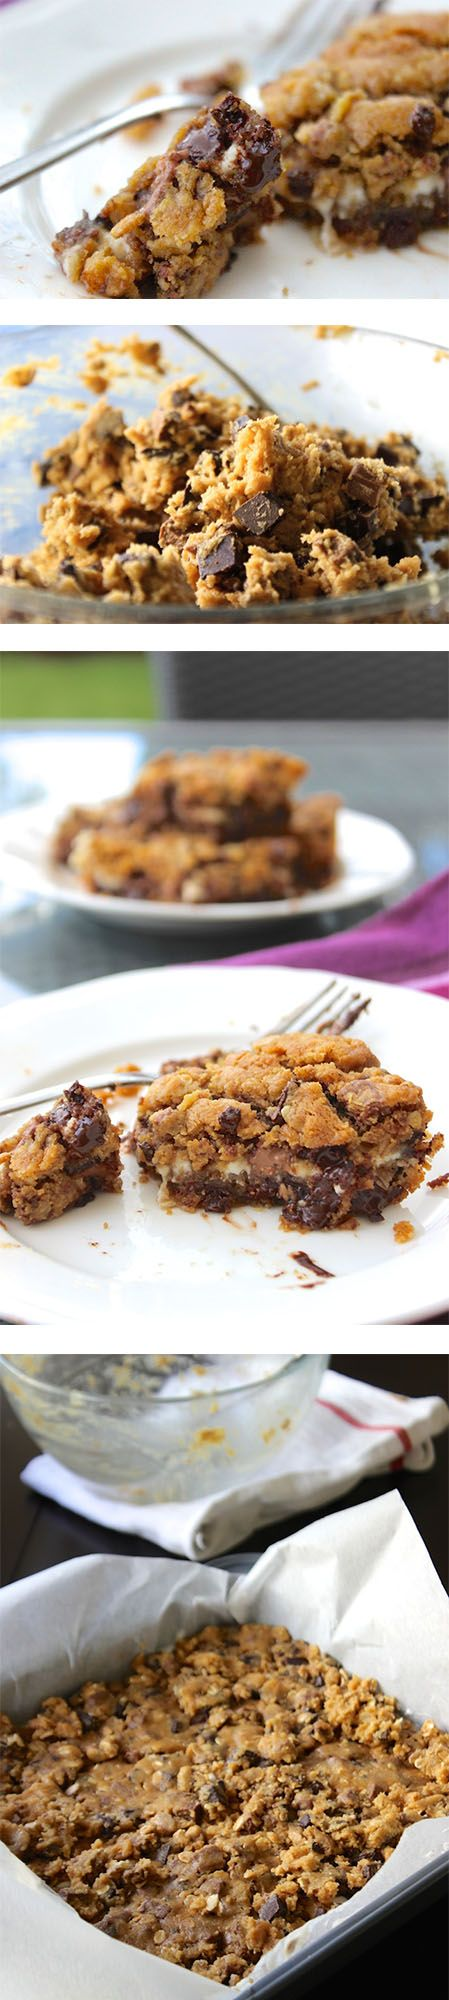 ... chocolate chip cookie cheesecake bars oozing with melted chocolate